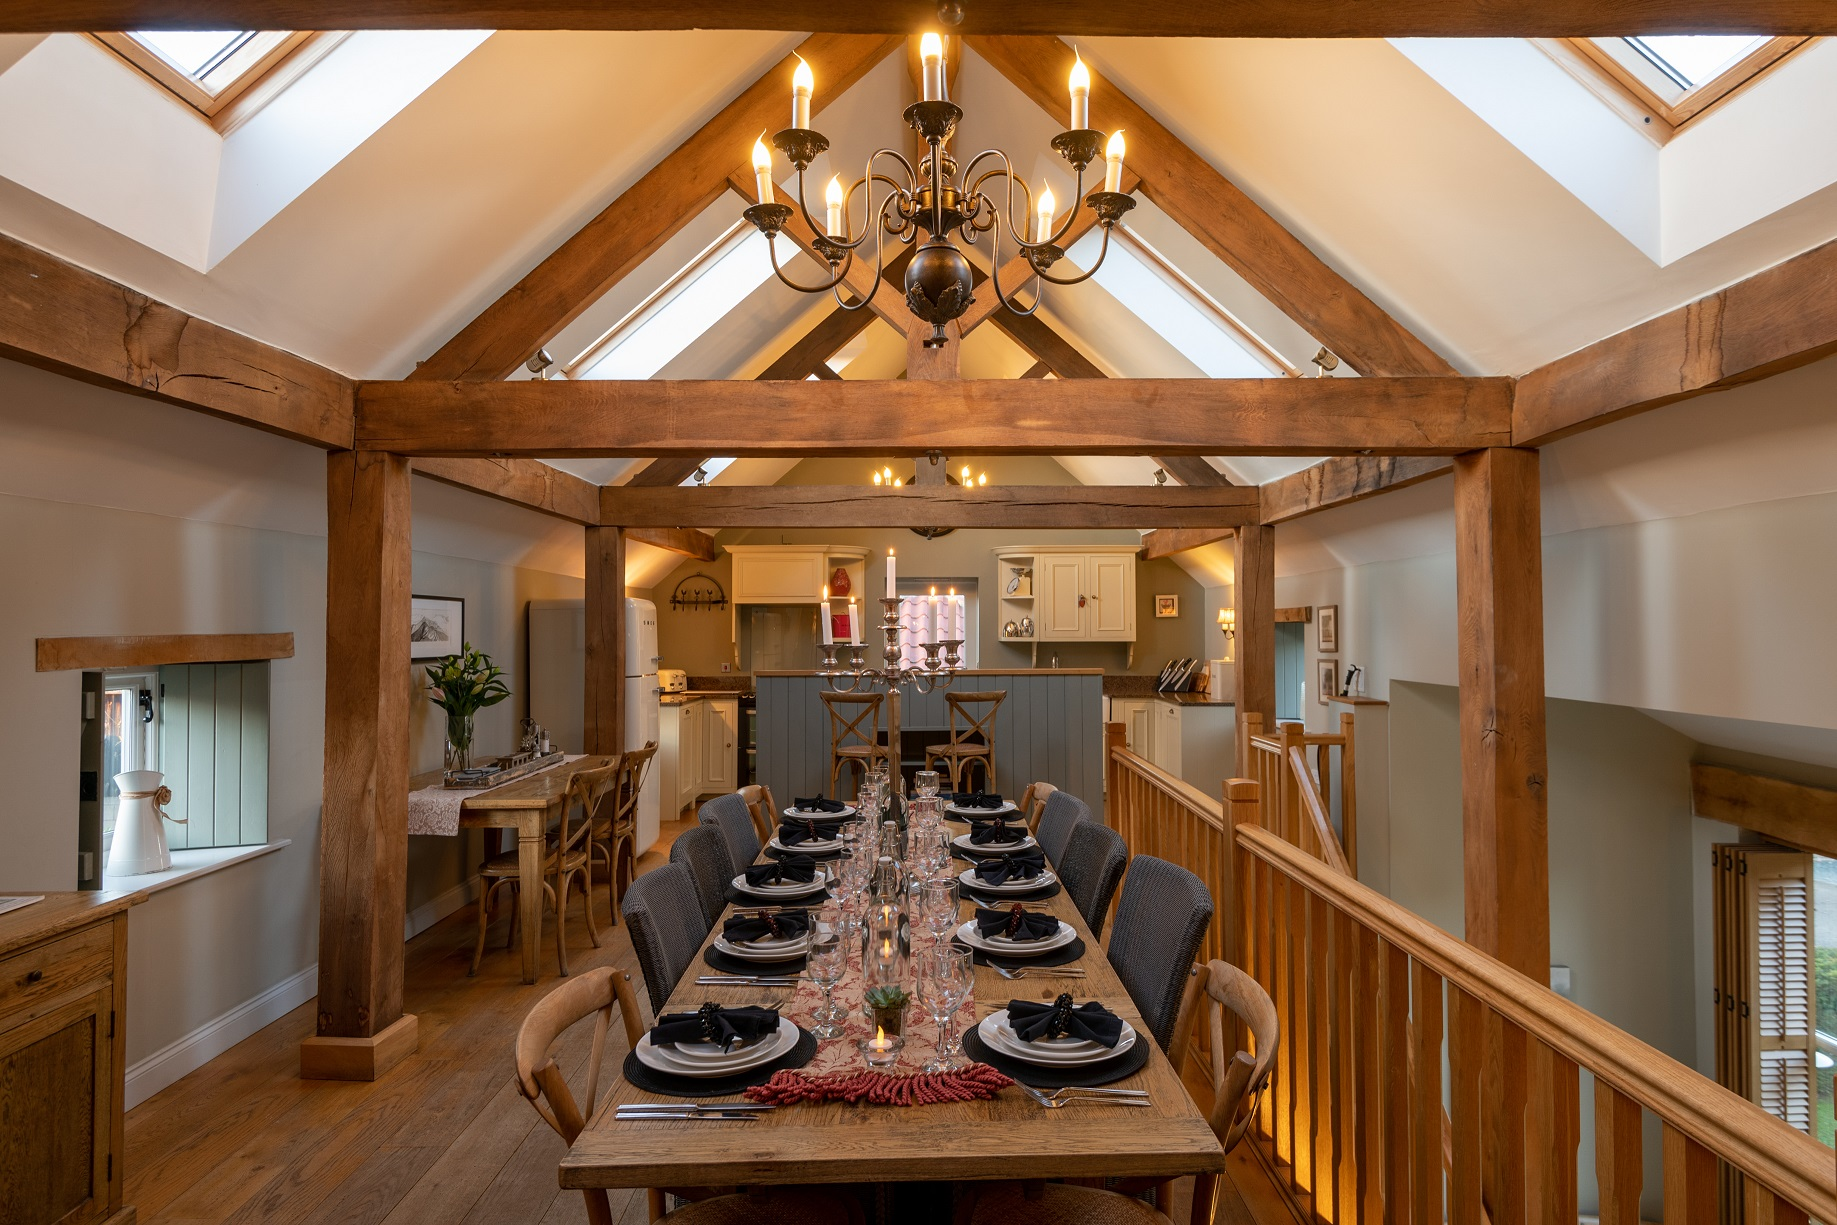 Dining table in the Hay Barn at The Dovecote Barns set with 8 places